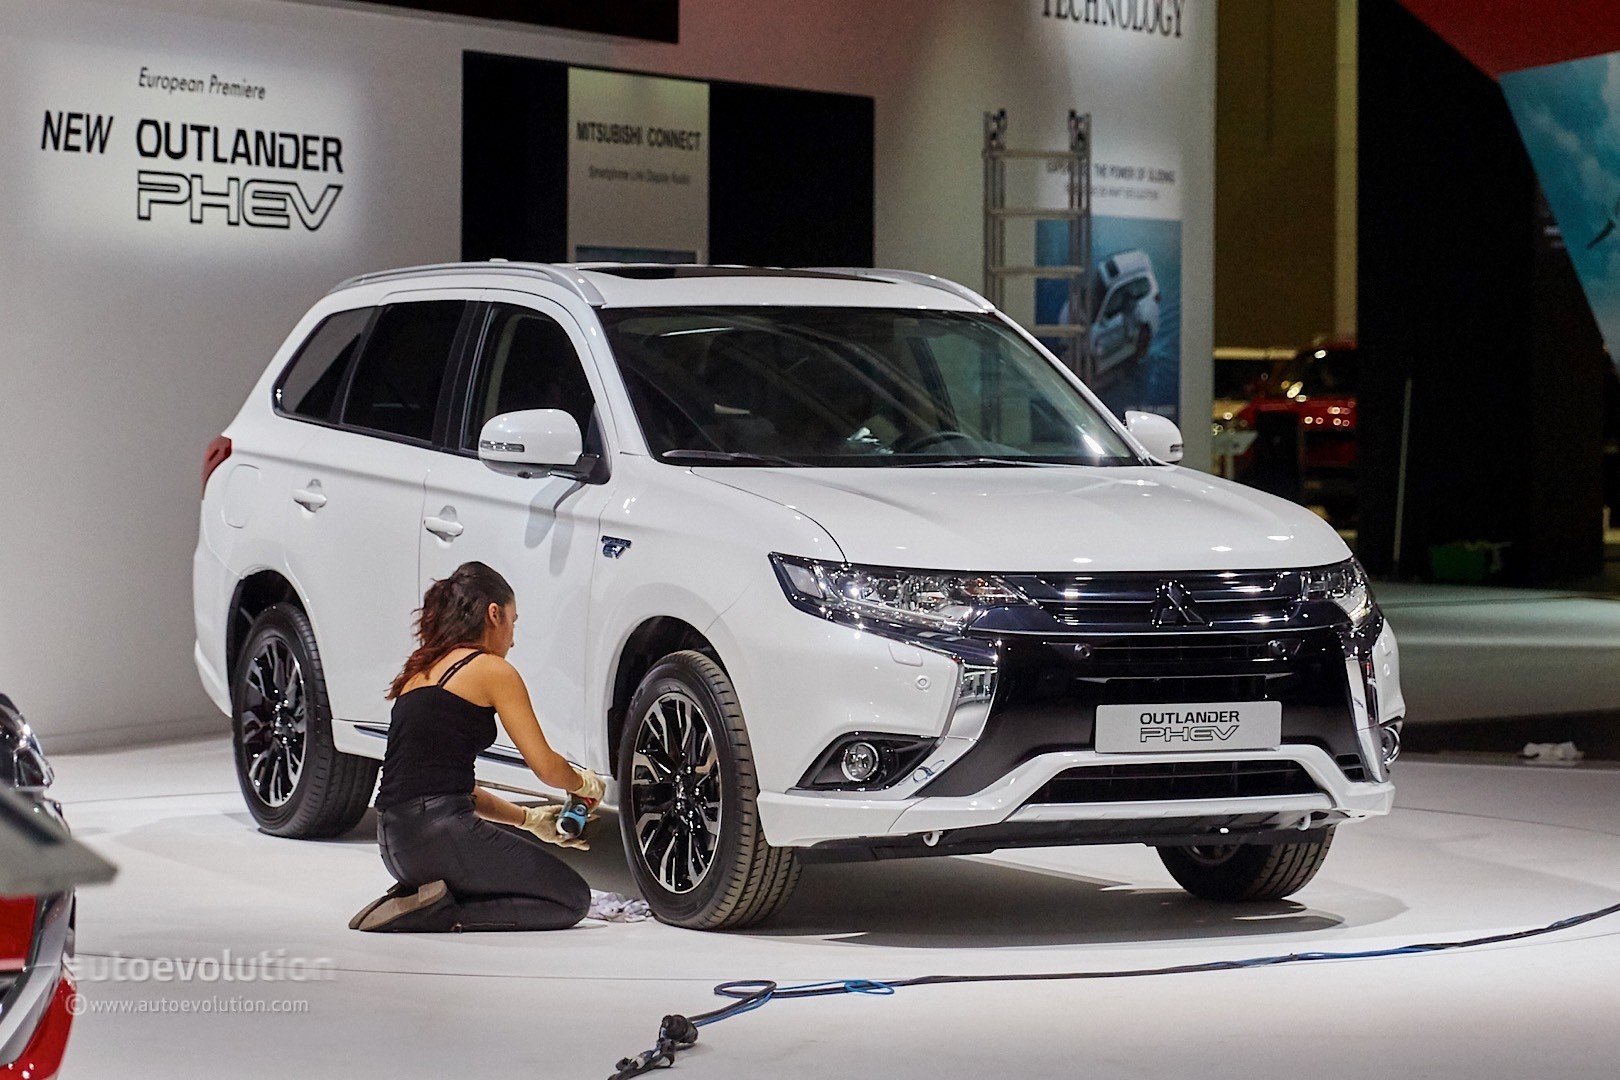 Mitsubishi Outlander PHEV Facelift Revealed at Frankfurt, Gets Rally Version - autoevolution